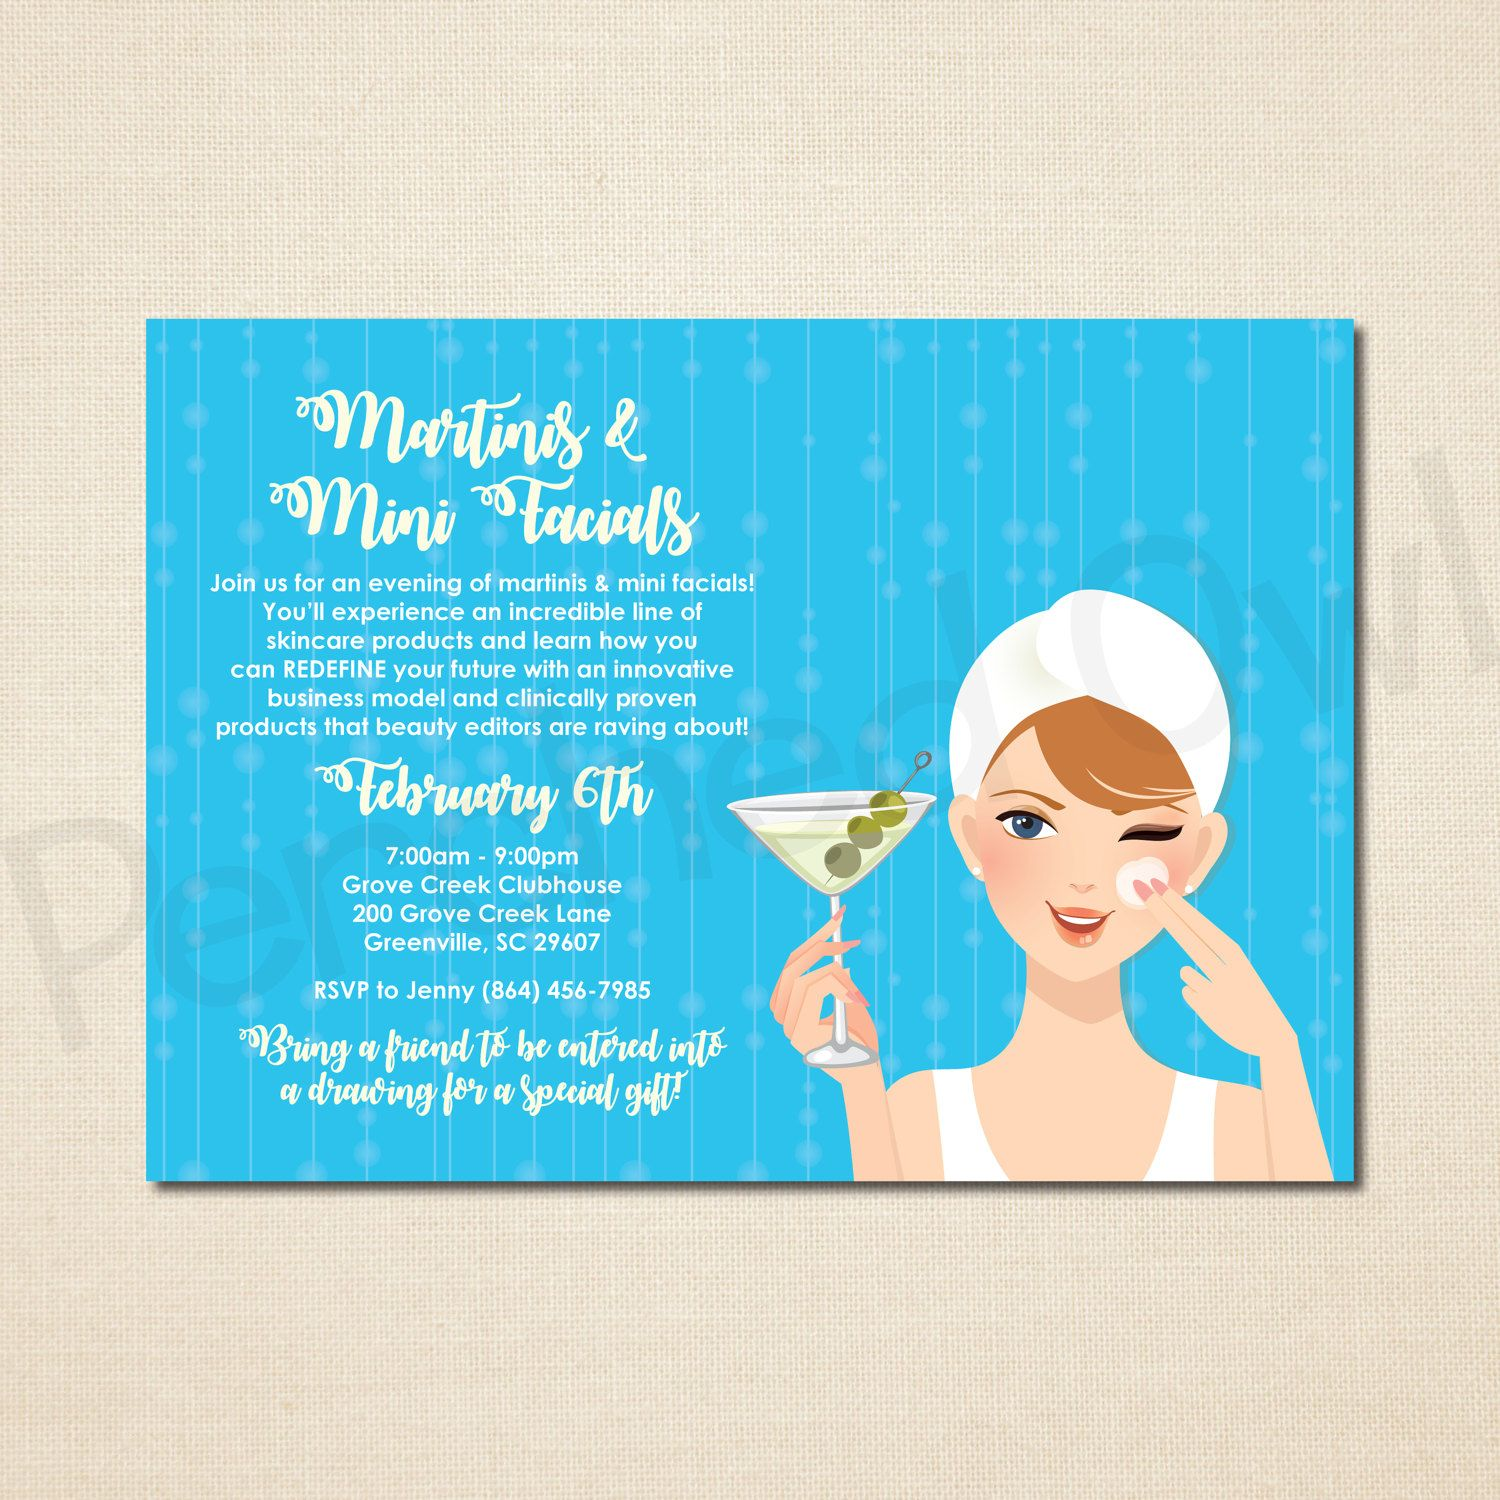 Martinis & Mini Facials Invitation - Direct Selling - Business ...